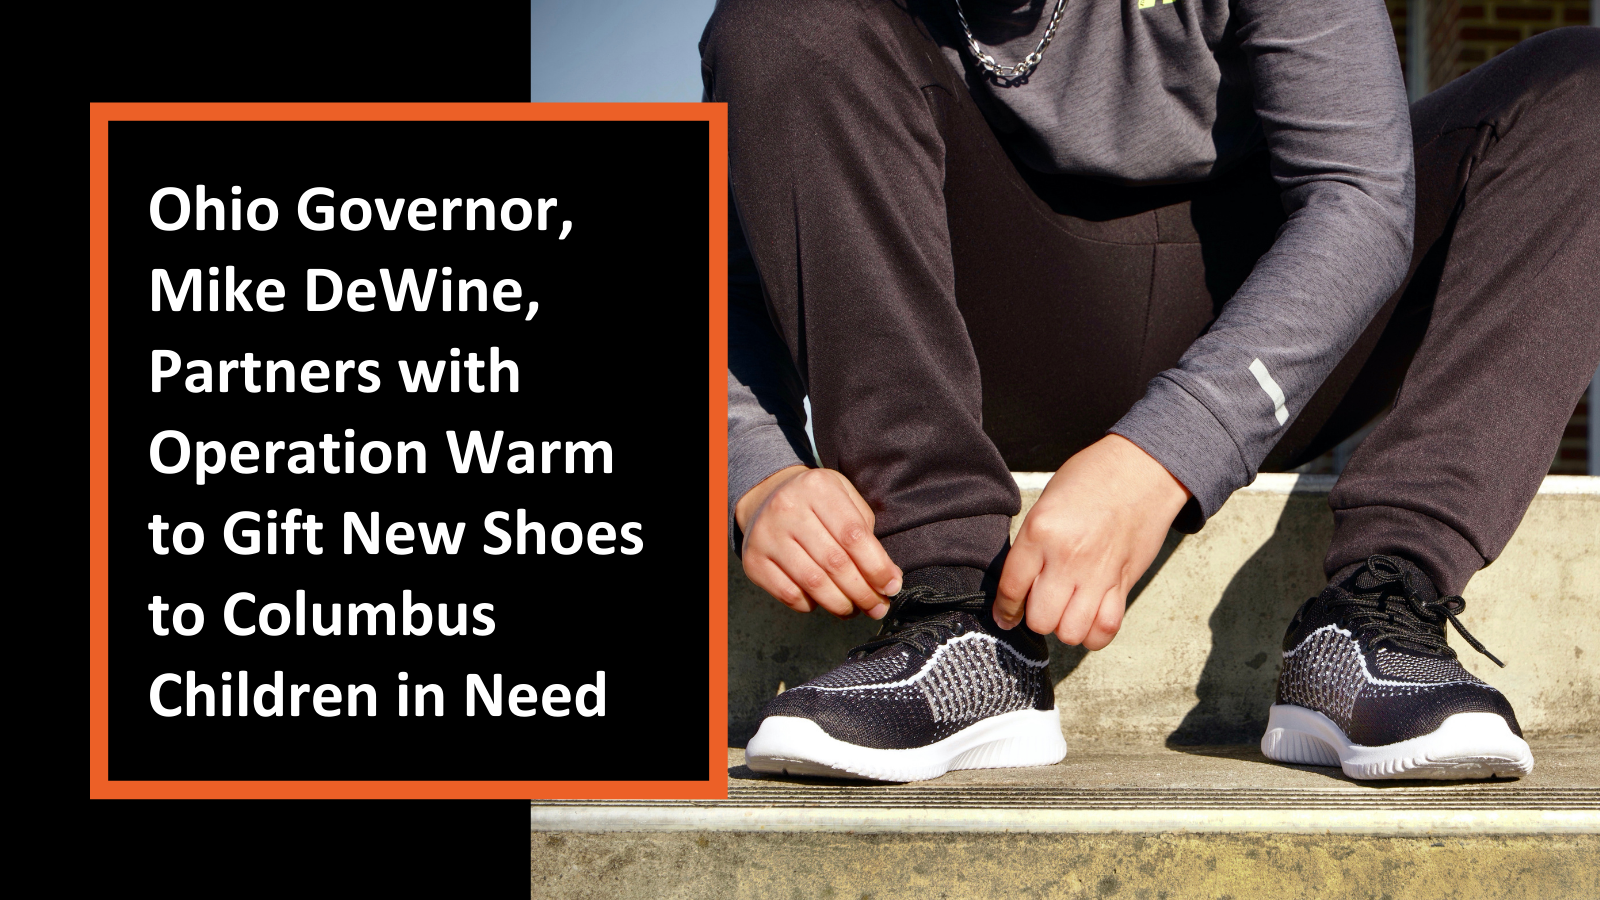 Ohio Governor, Mike DeWine, Partners with Operation Warm to Gift New Shoes to Columbus Children in Need